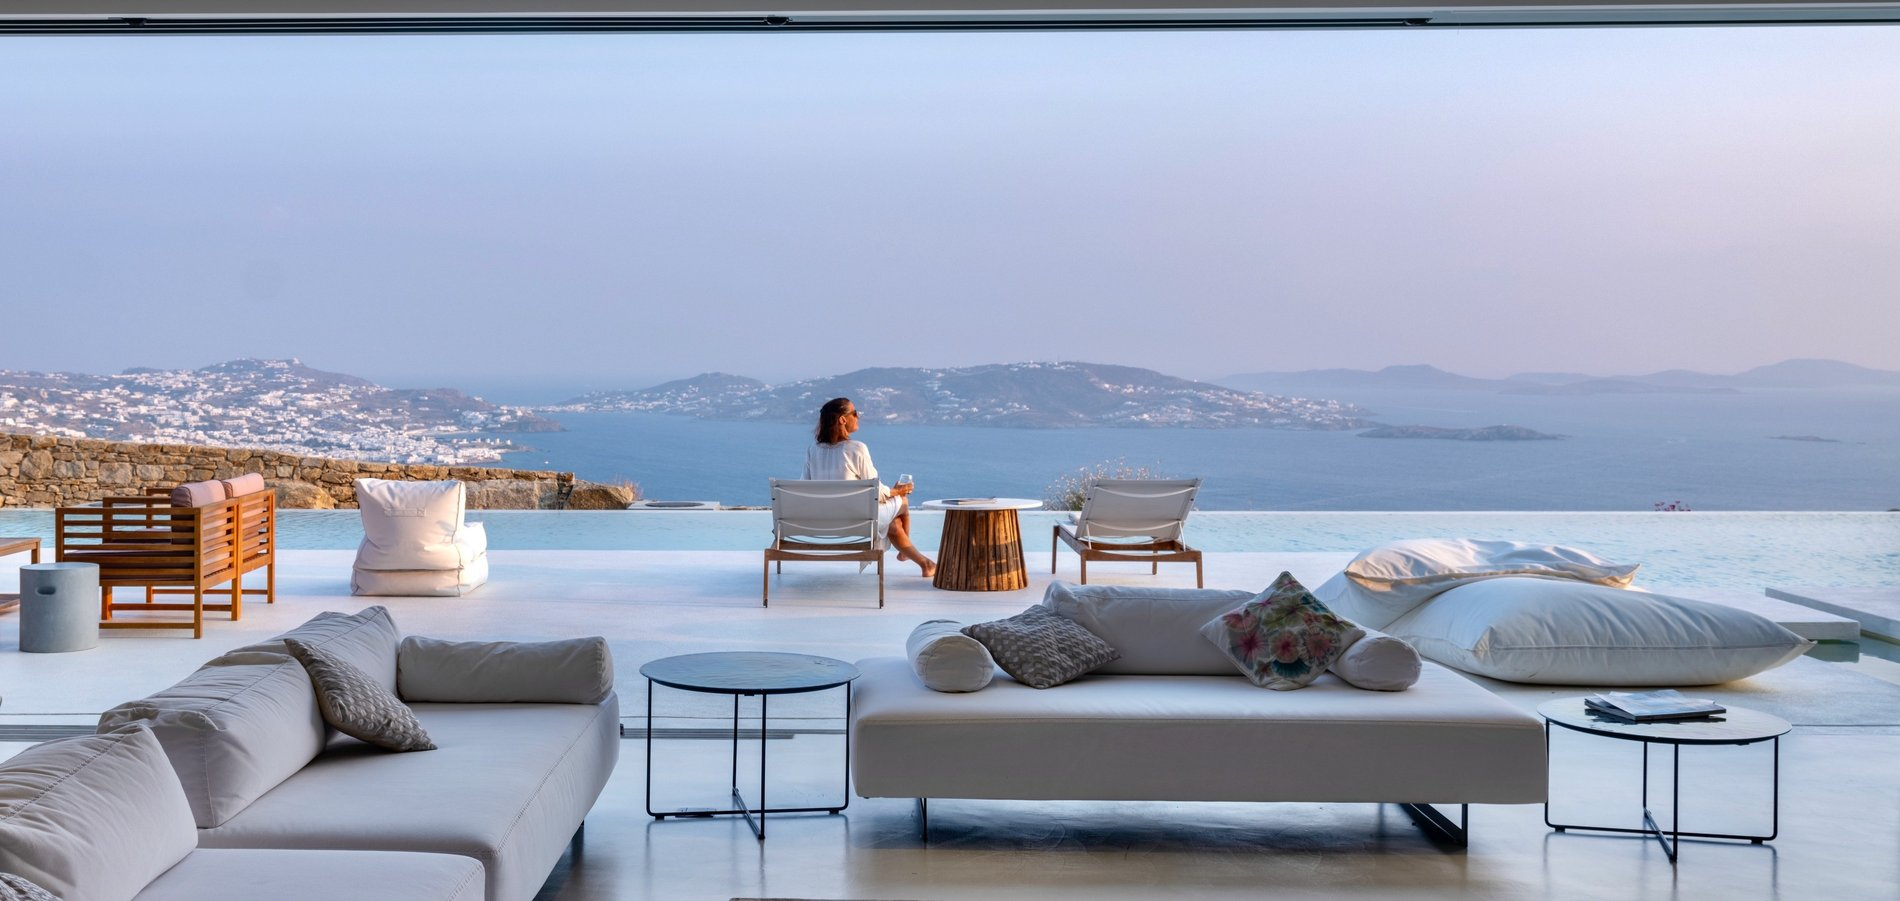 Modern Greek Home Mykonos. View from inside the home overlooking the infinity edge pool and Greece.